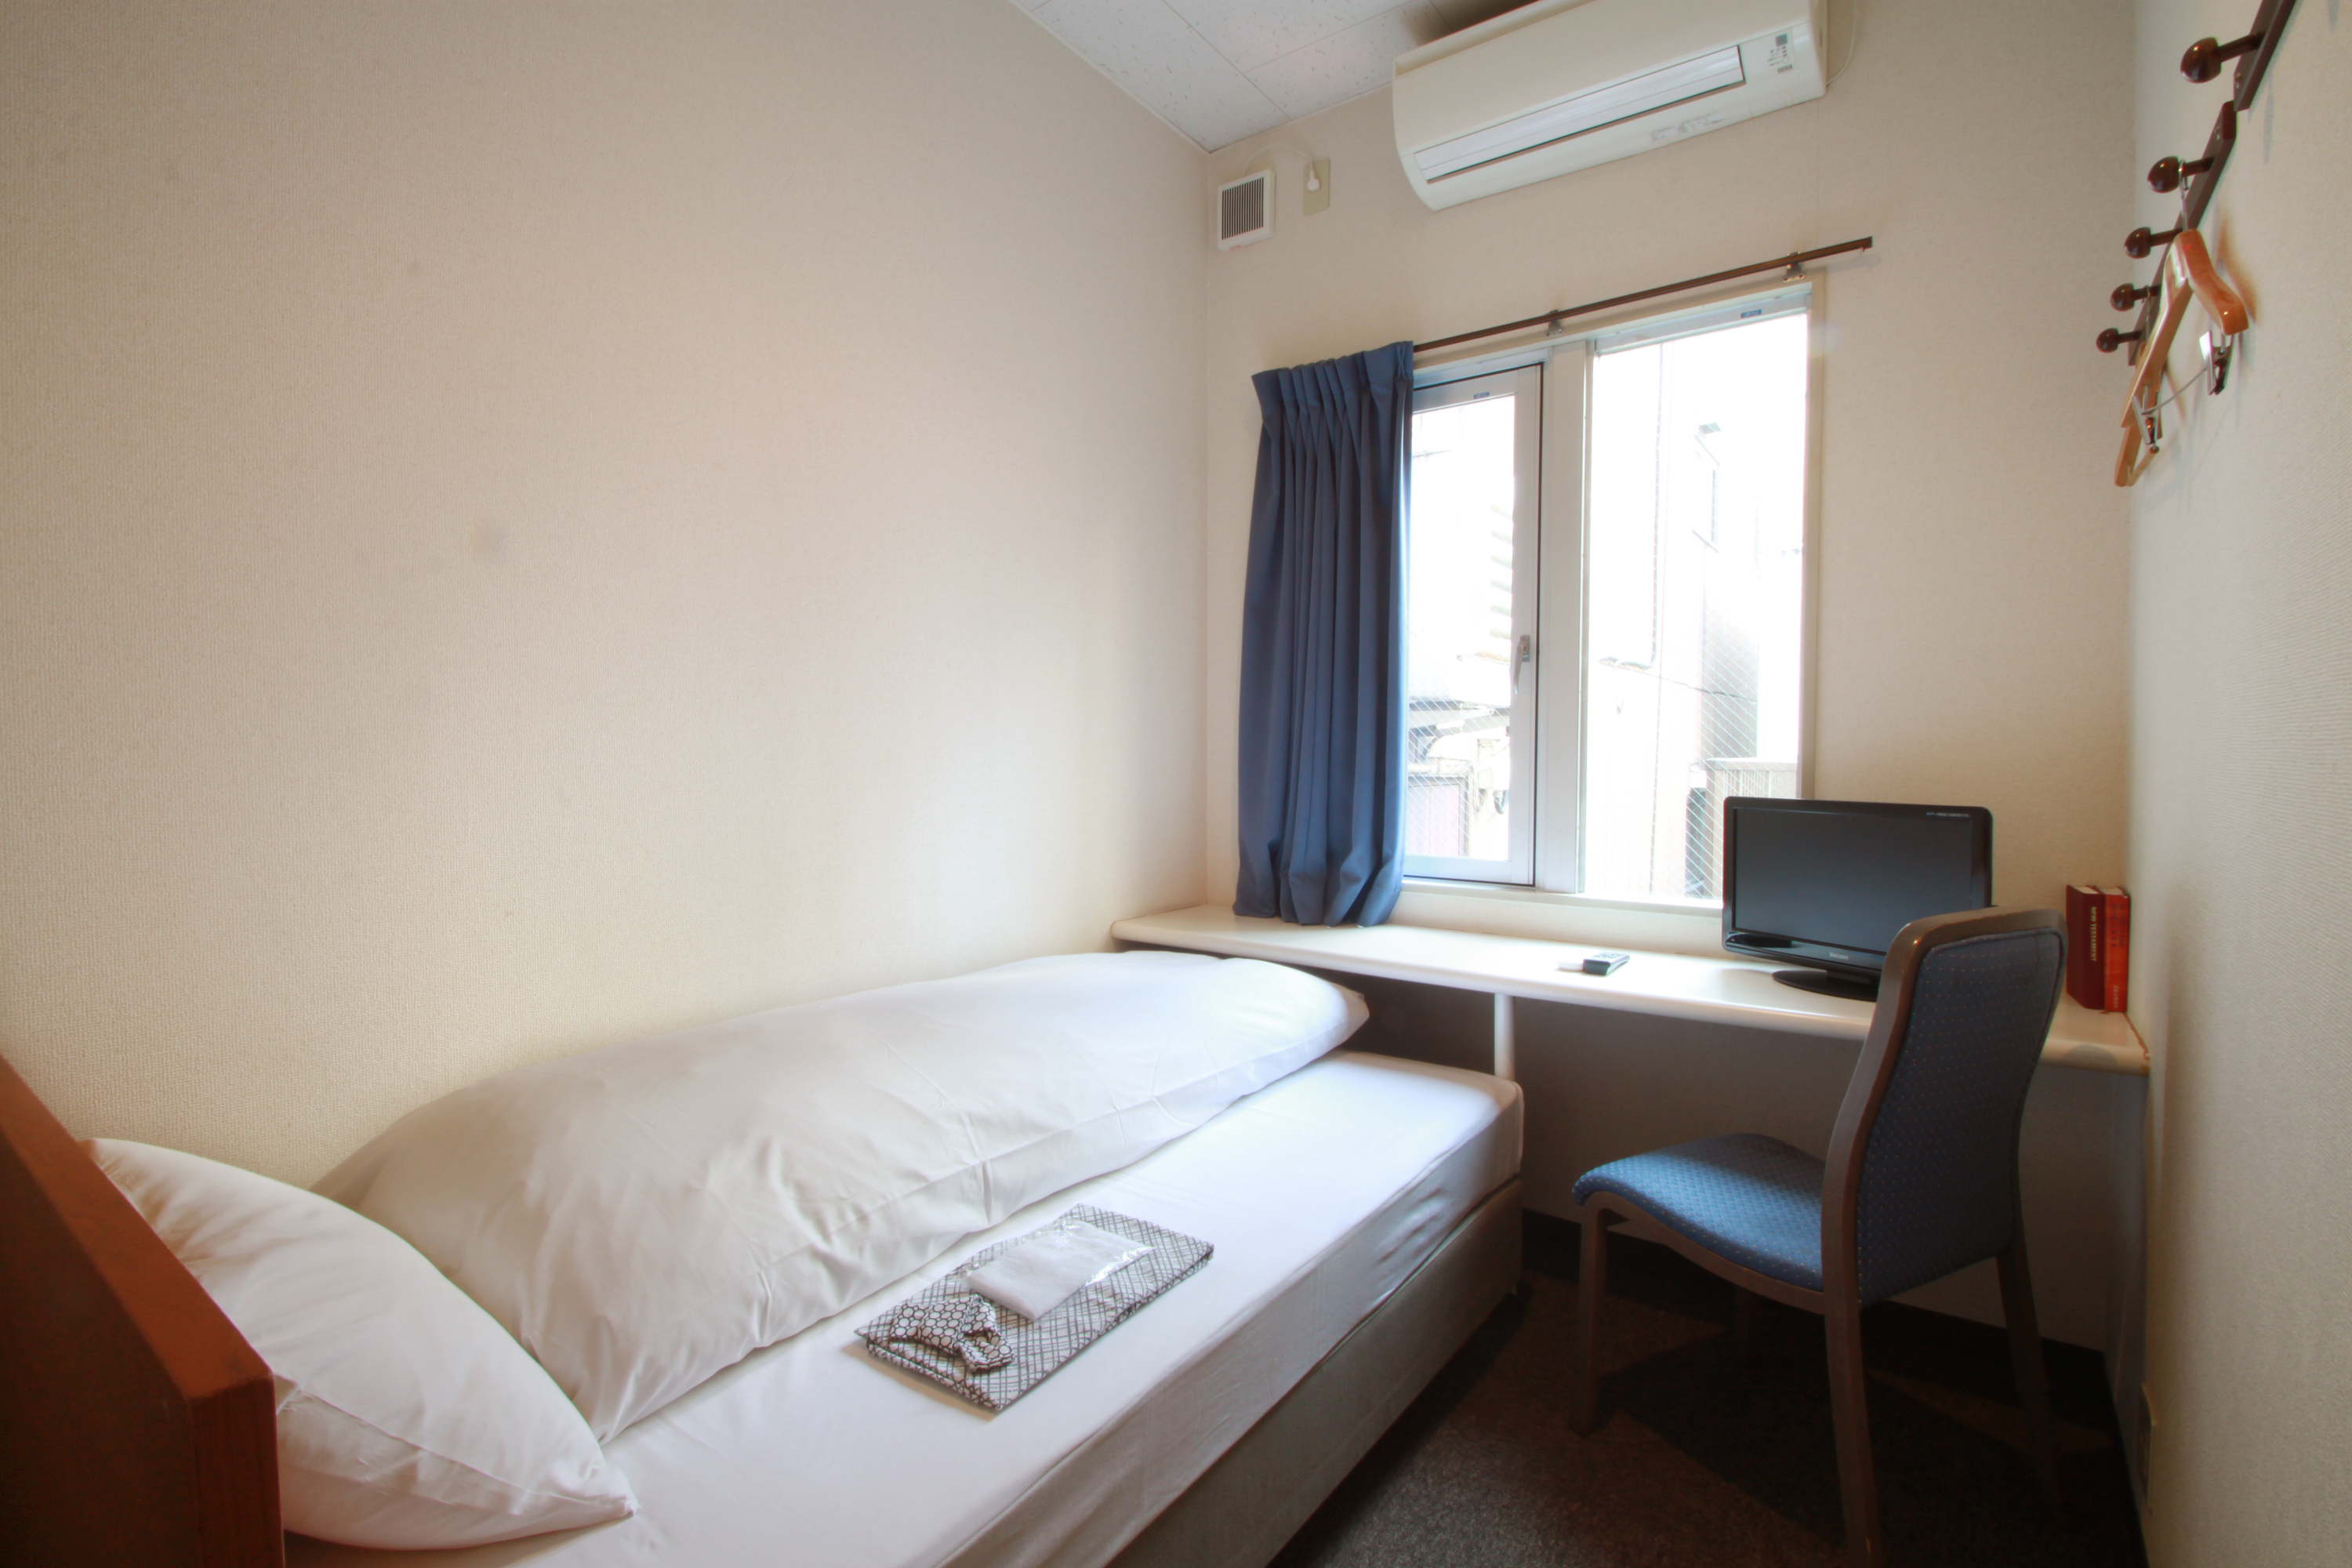 Best cheap hotels in tokyo time out tokyo for Cheap hotels